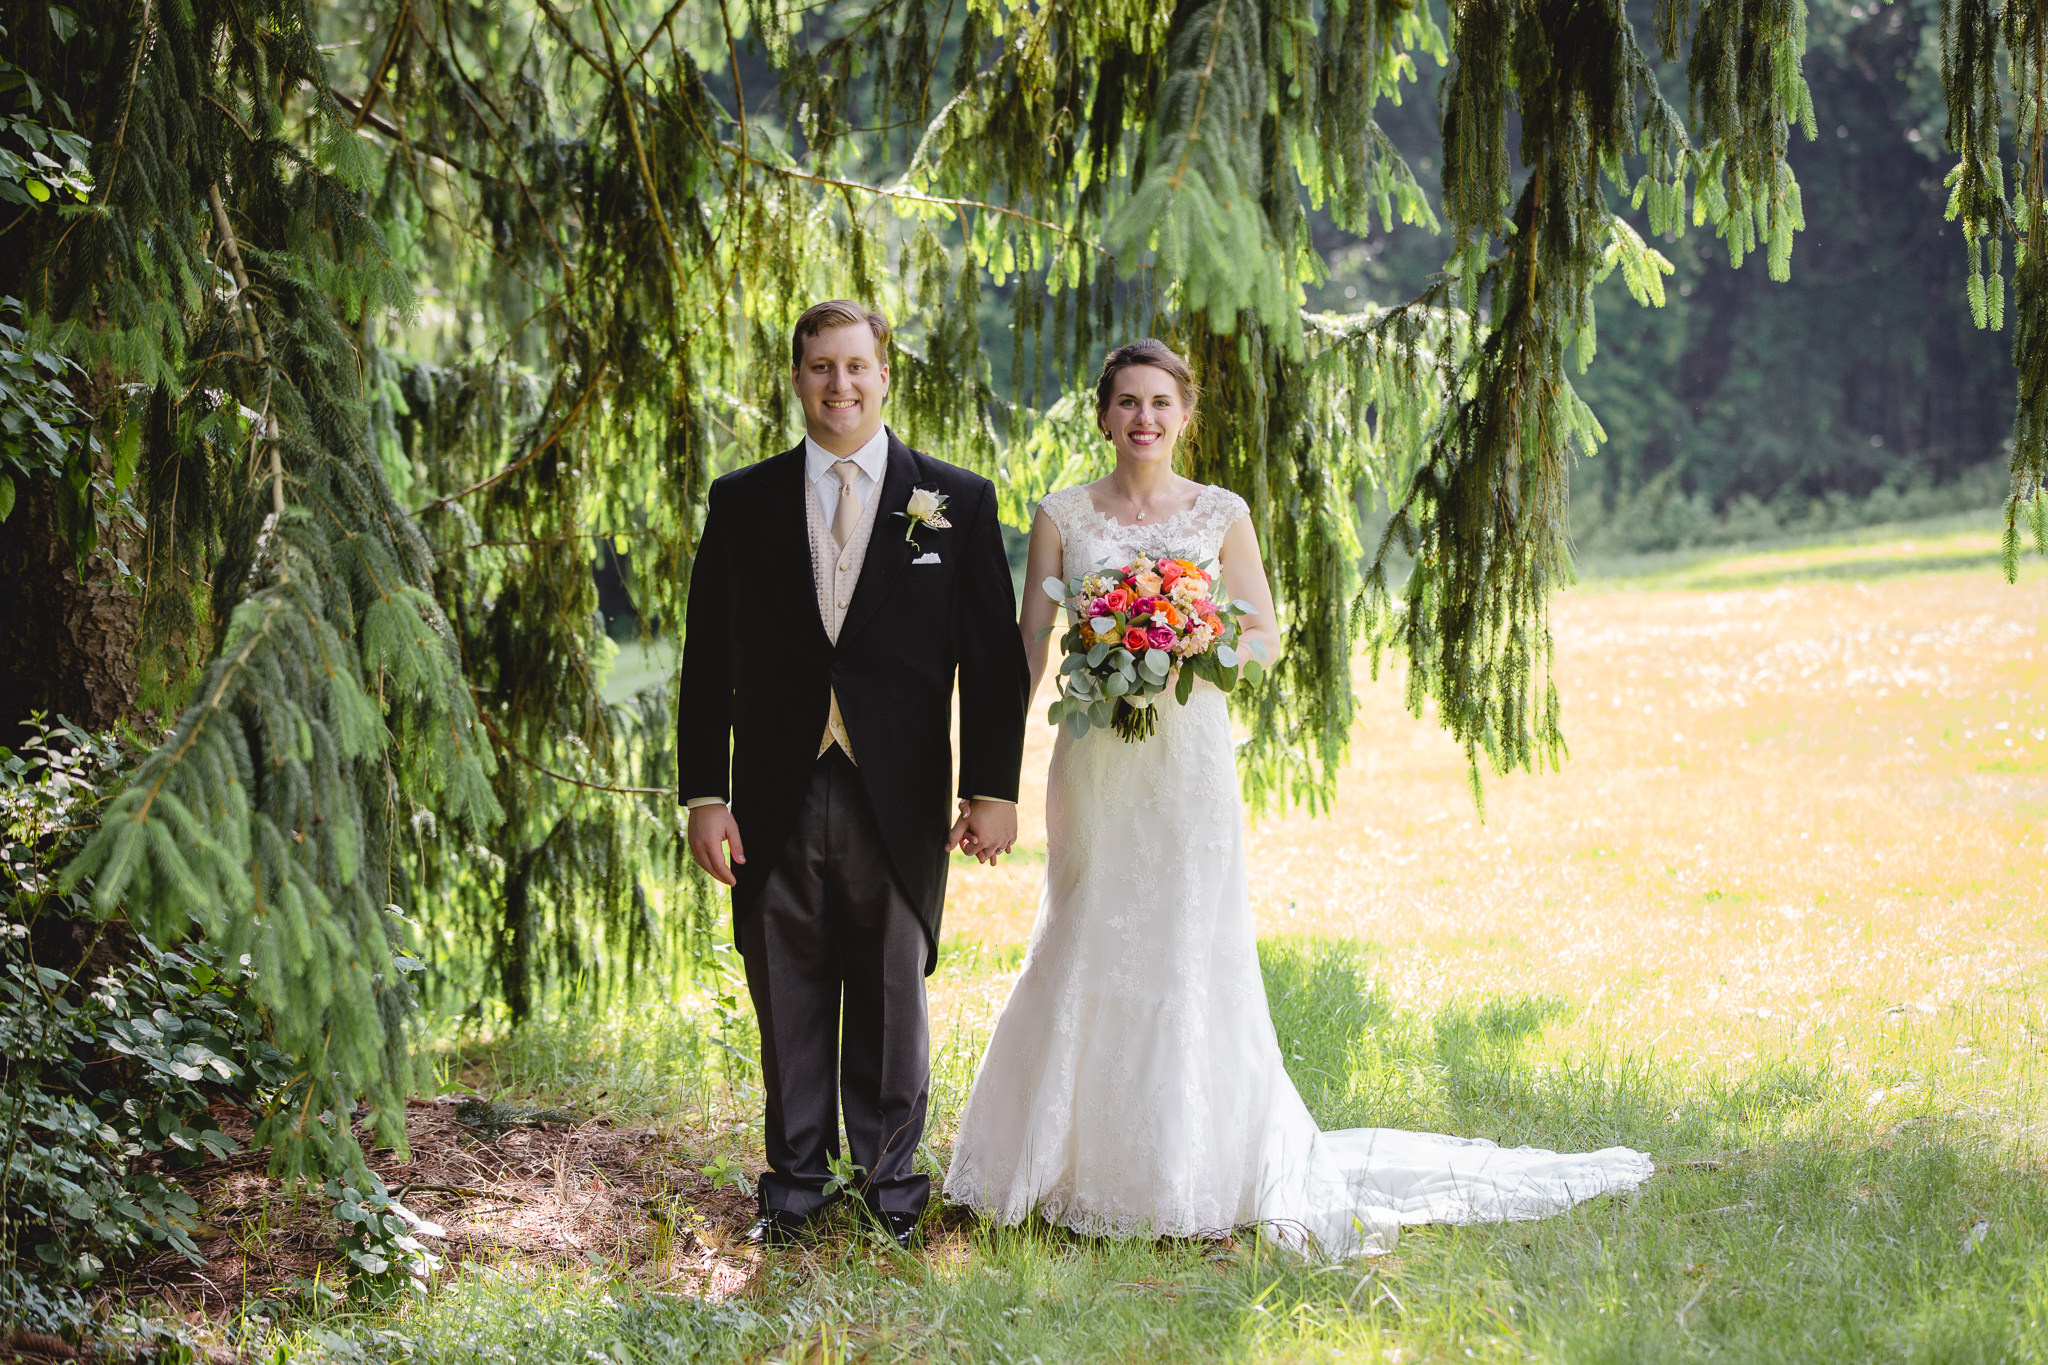 Bride & groom under pine tree at Shannopin Country Club